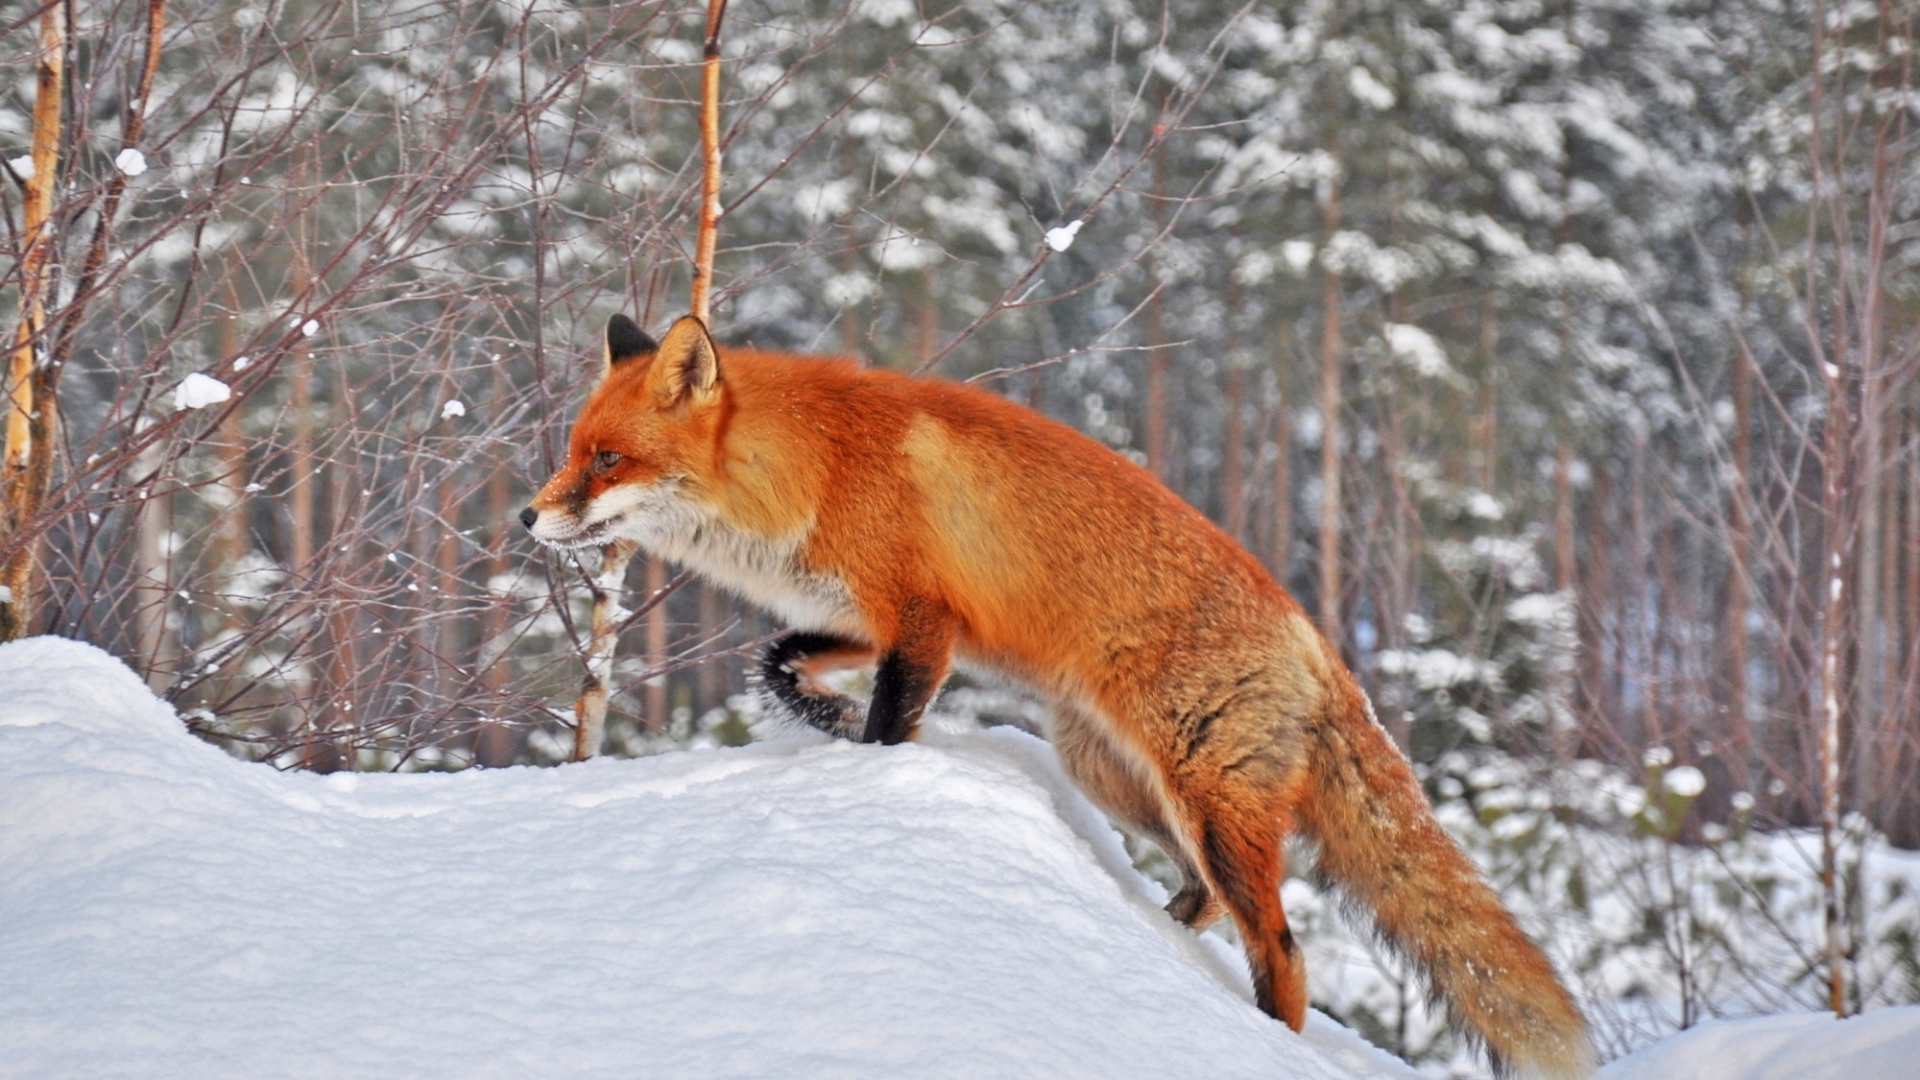 Fox In Snow, HD Animals, 4k Wallpapers, Images